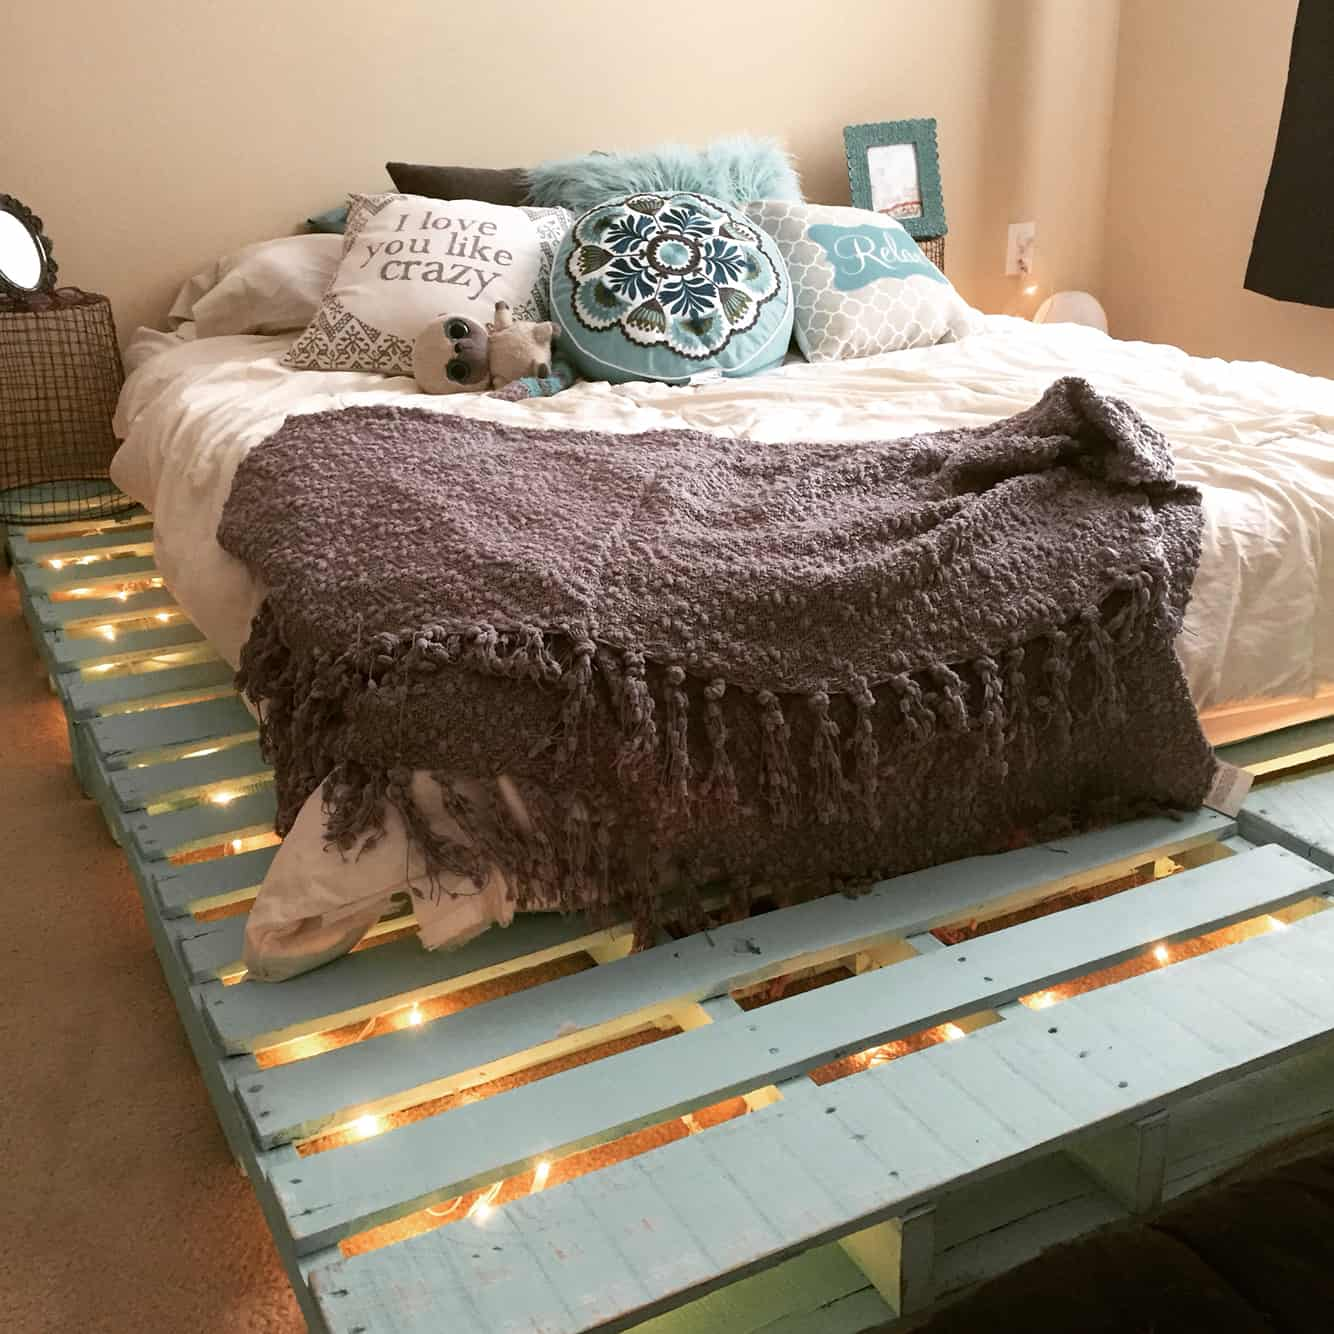 Vintage Recycled Pallet Bed Frames homesthetics